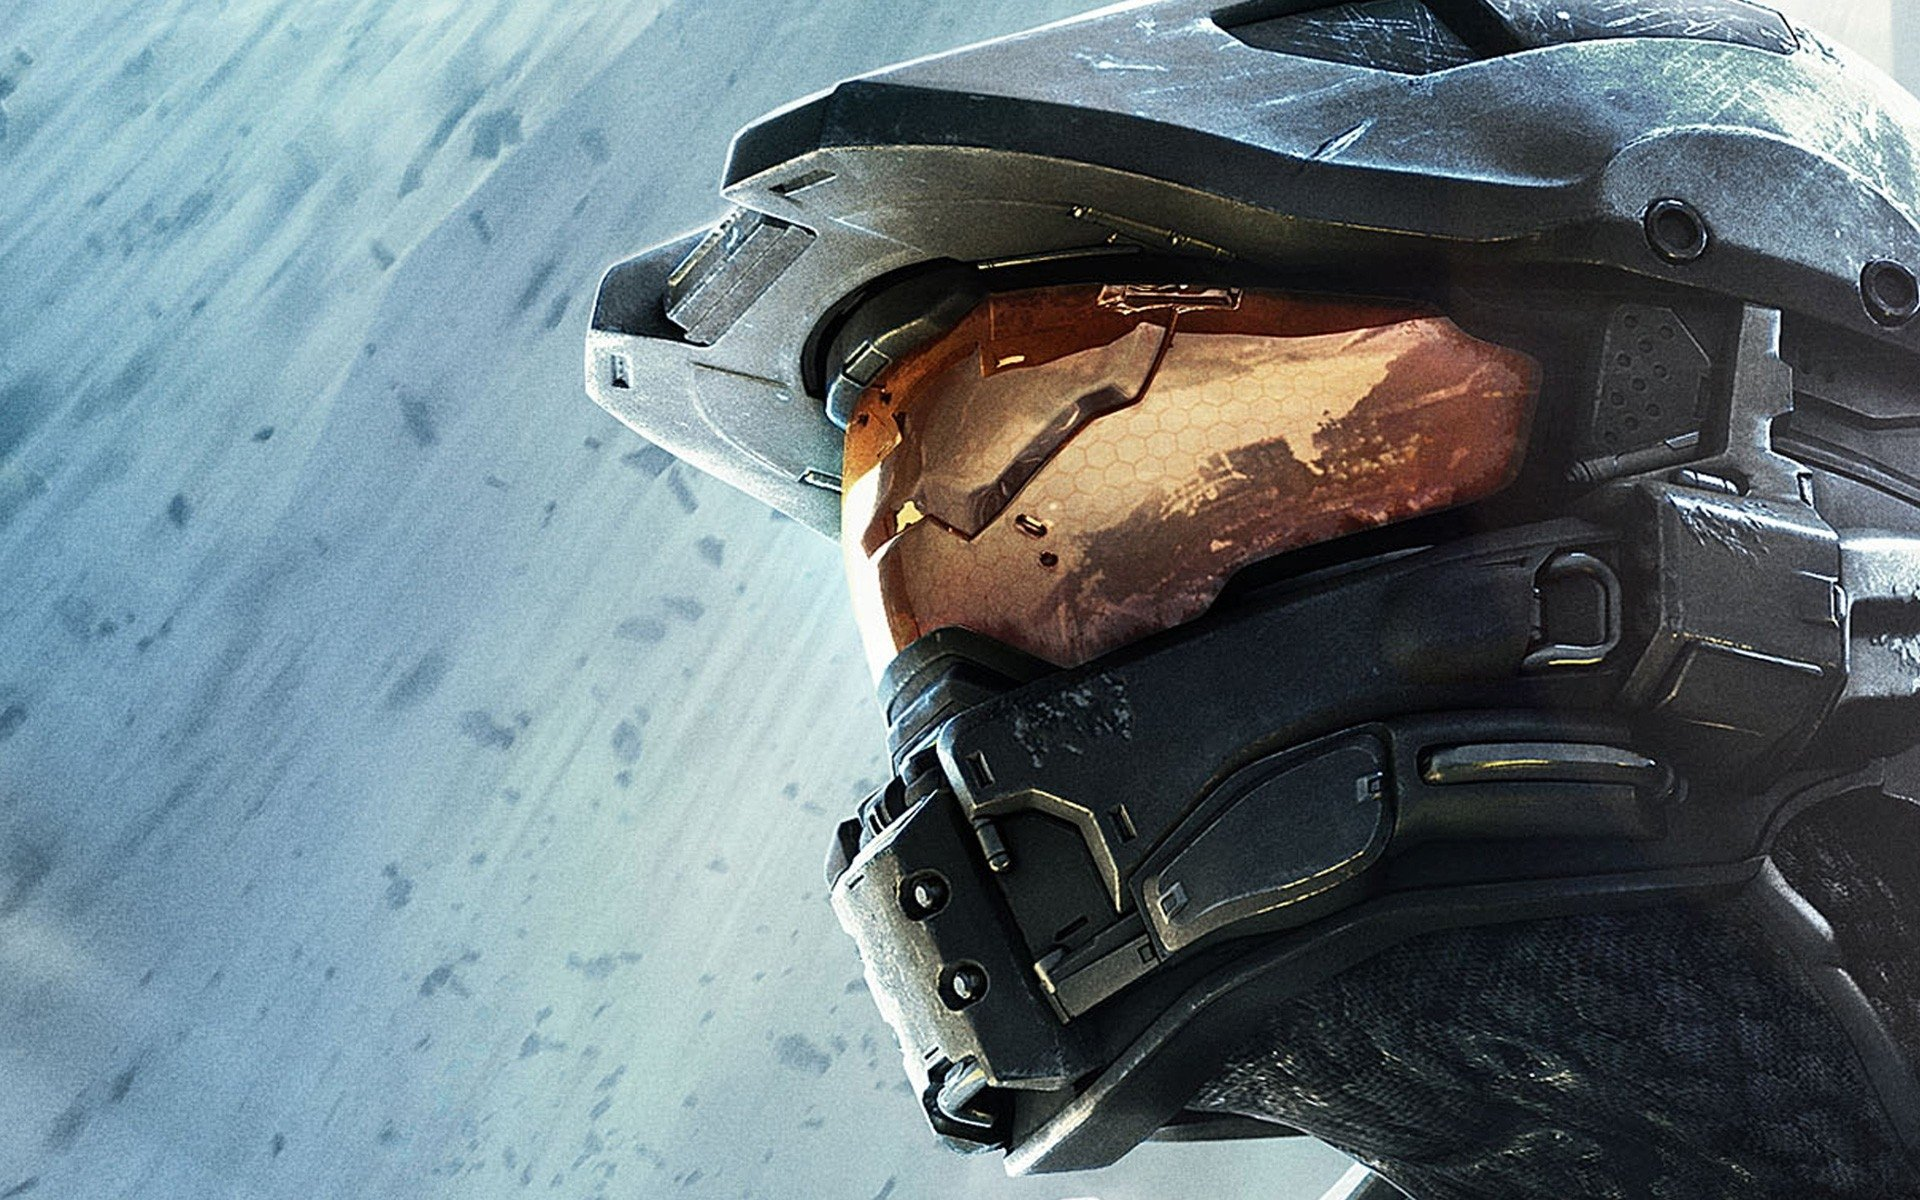 92 Halo 4 HD Wallpapers Background Images 1920x1200